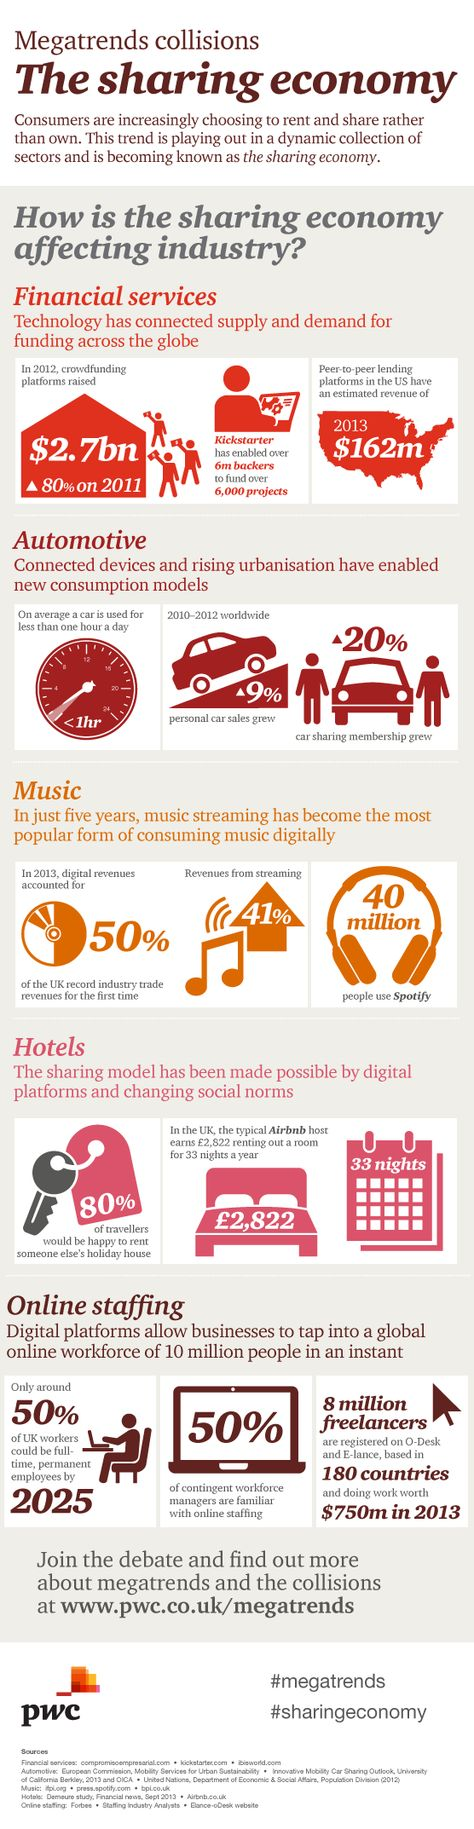 Megatrends collisions - The sharing economy